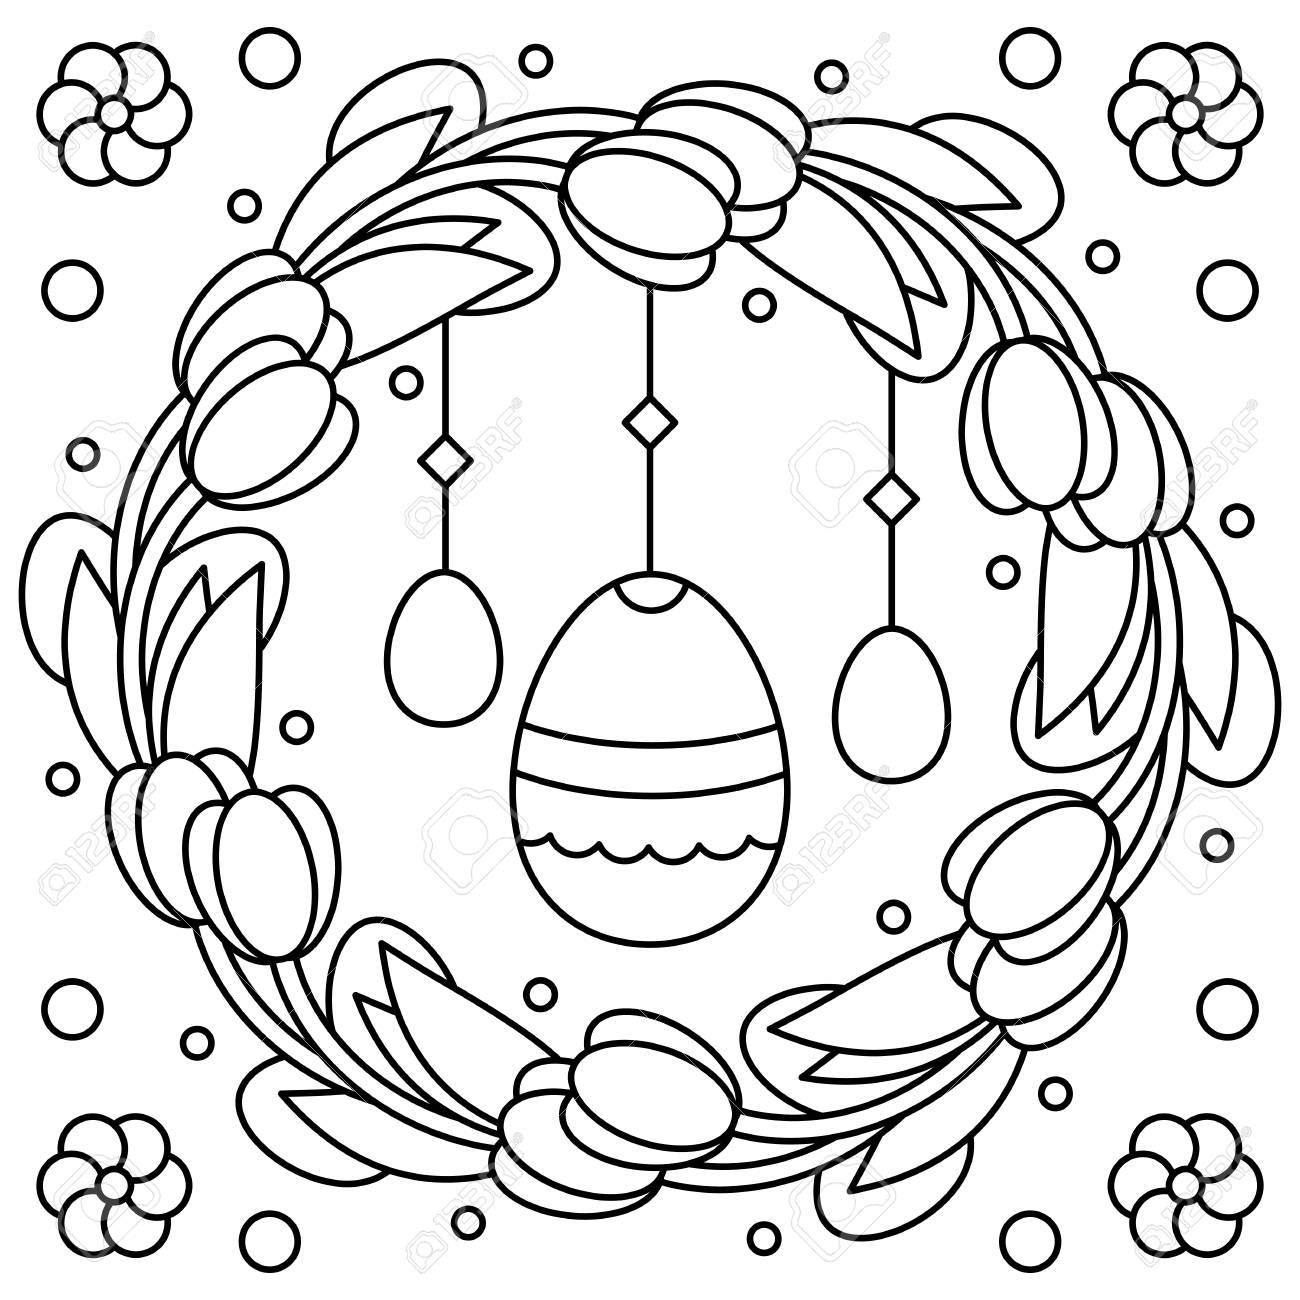 Easter Wreath Coloring Page Vector Illustration Royalty Free